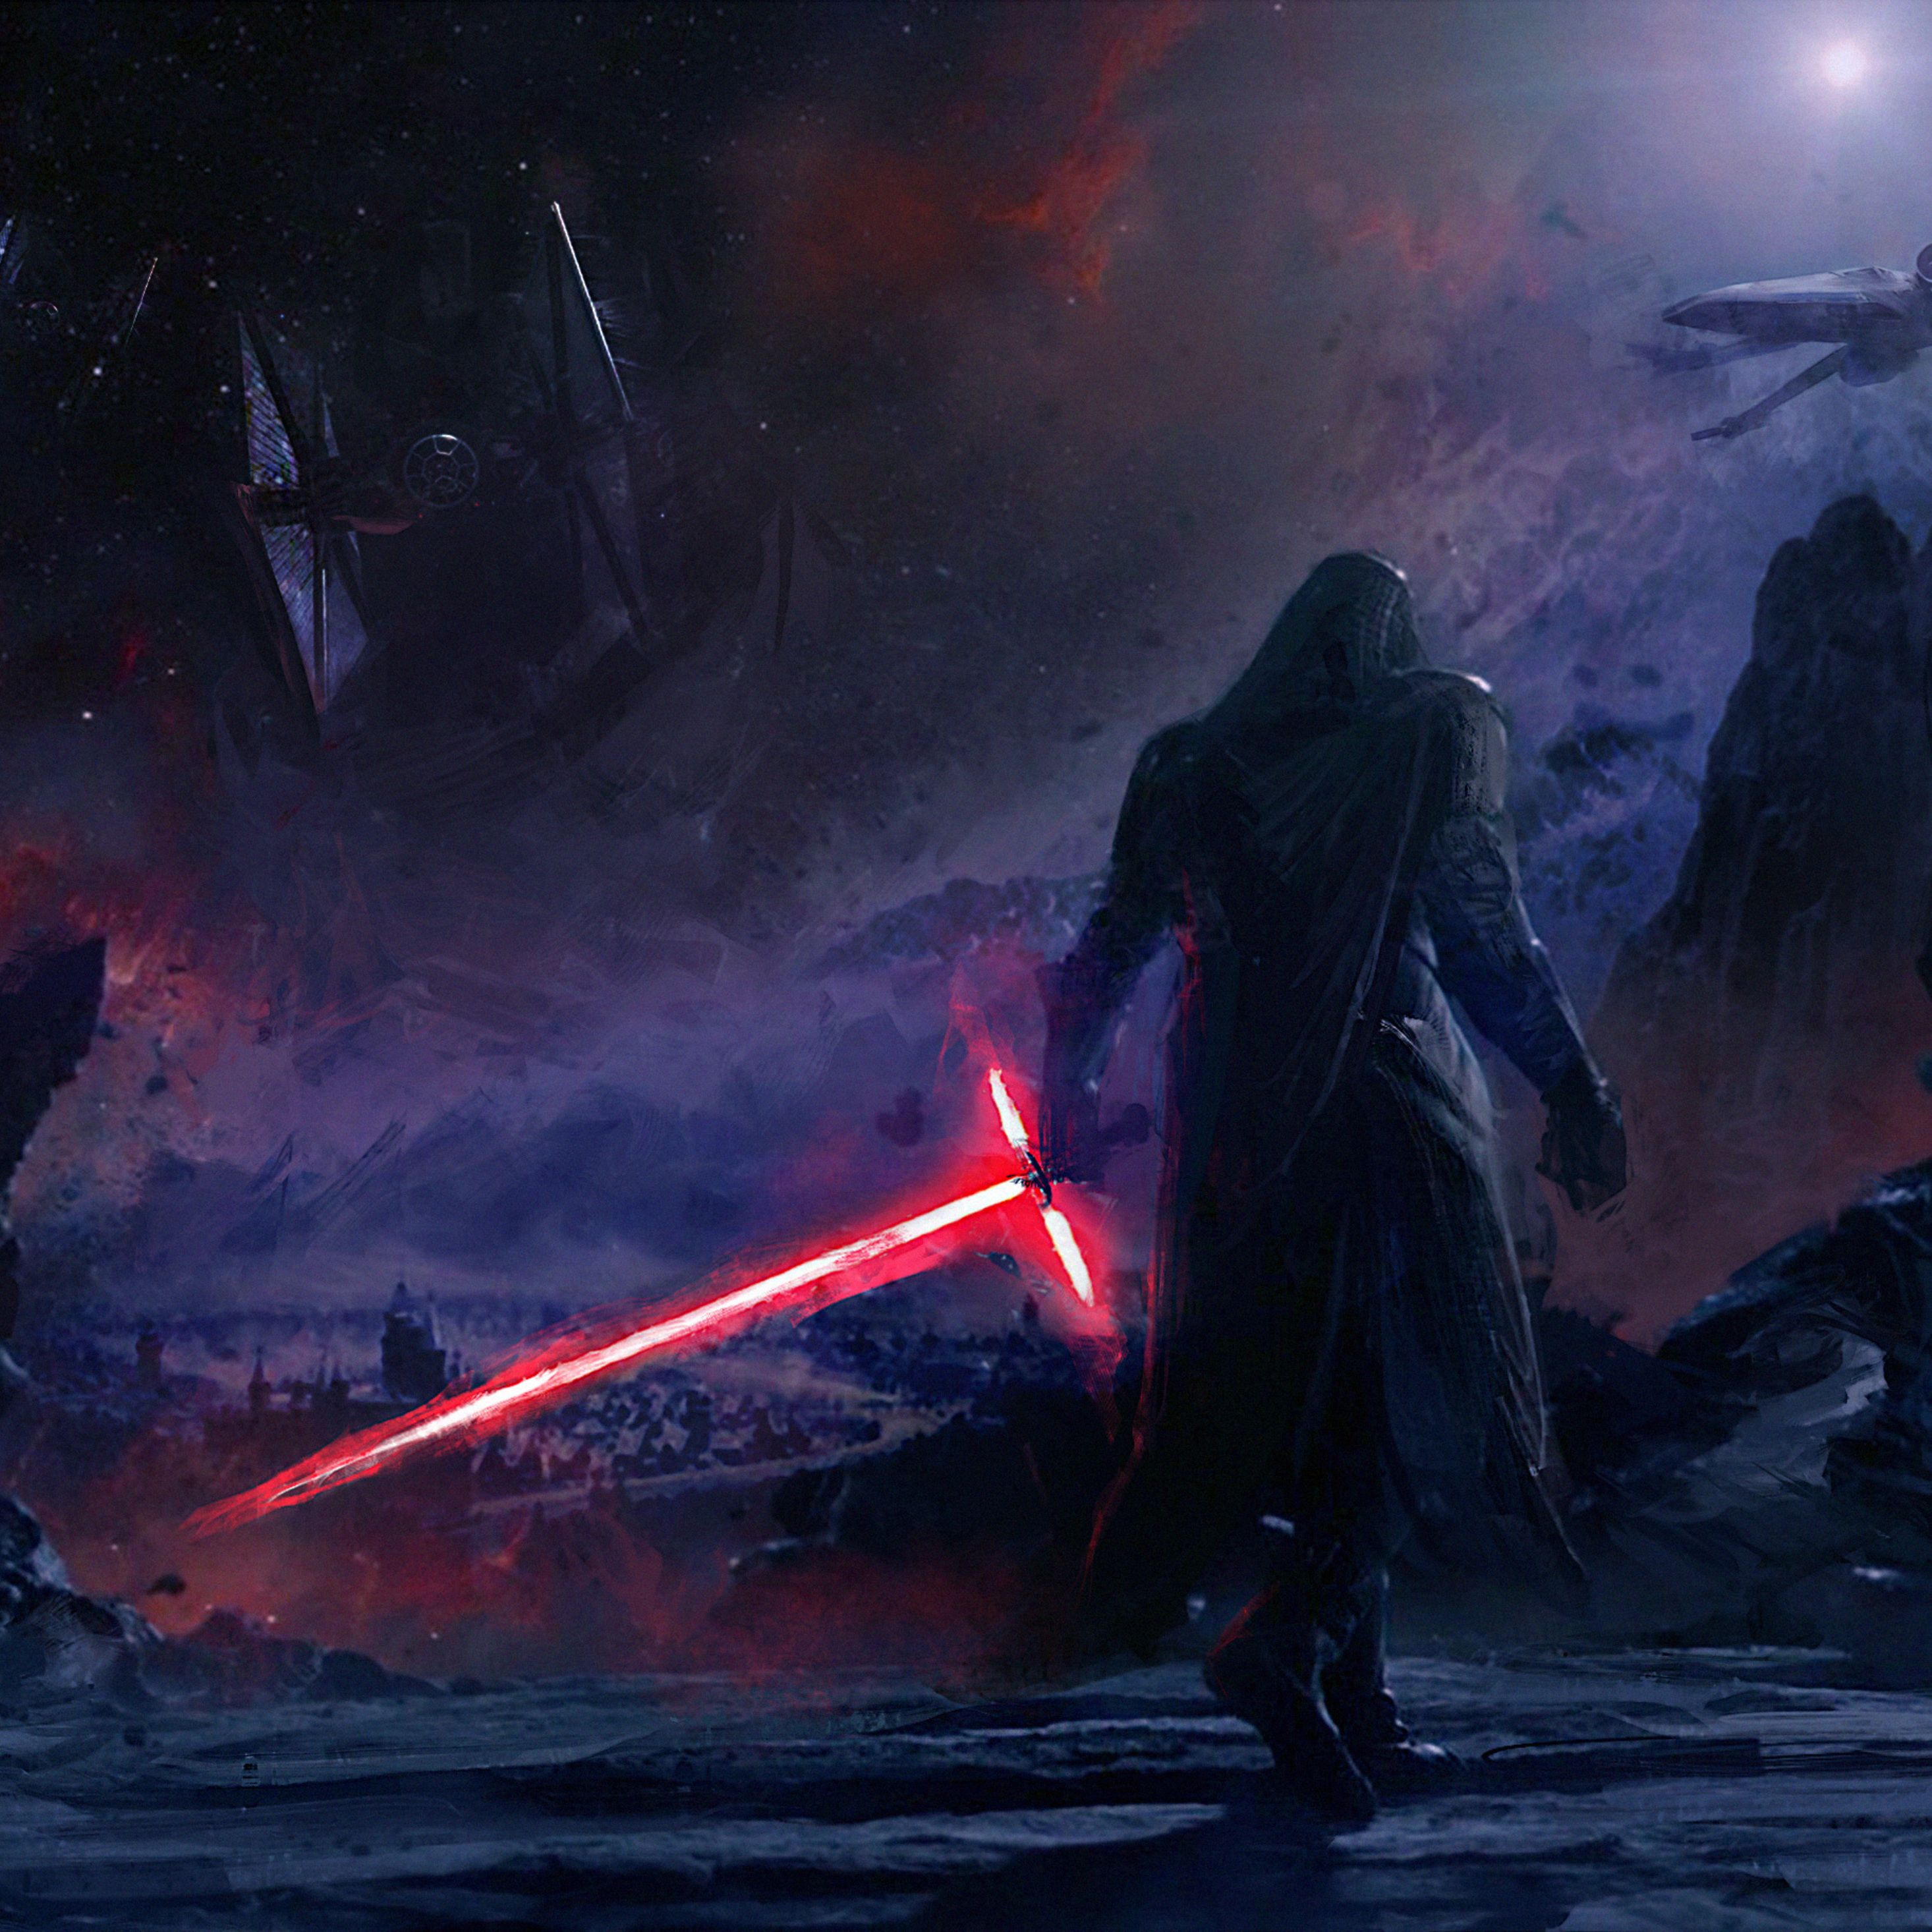 kylo-ren-star-wars-artwork-4k-x7.jpg